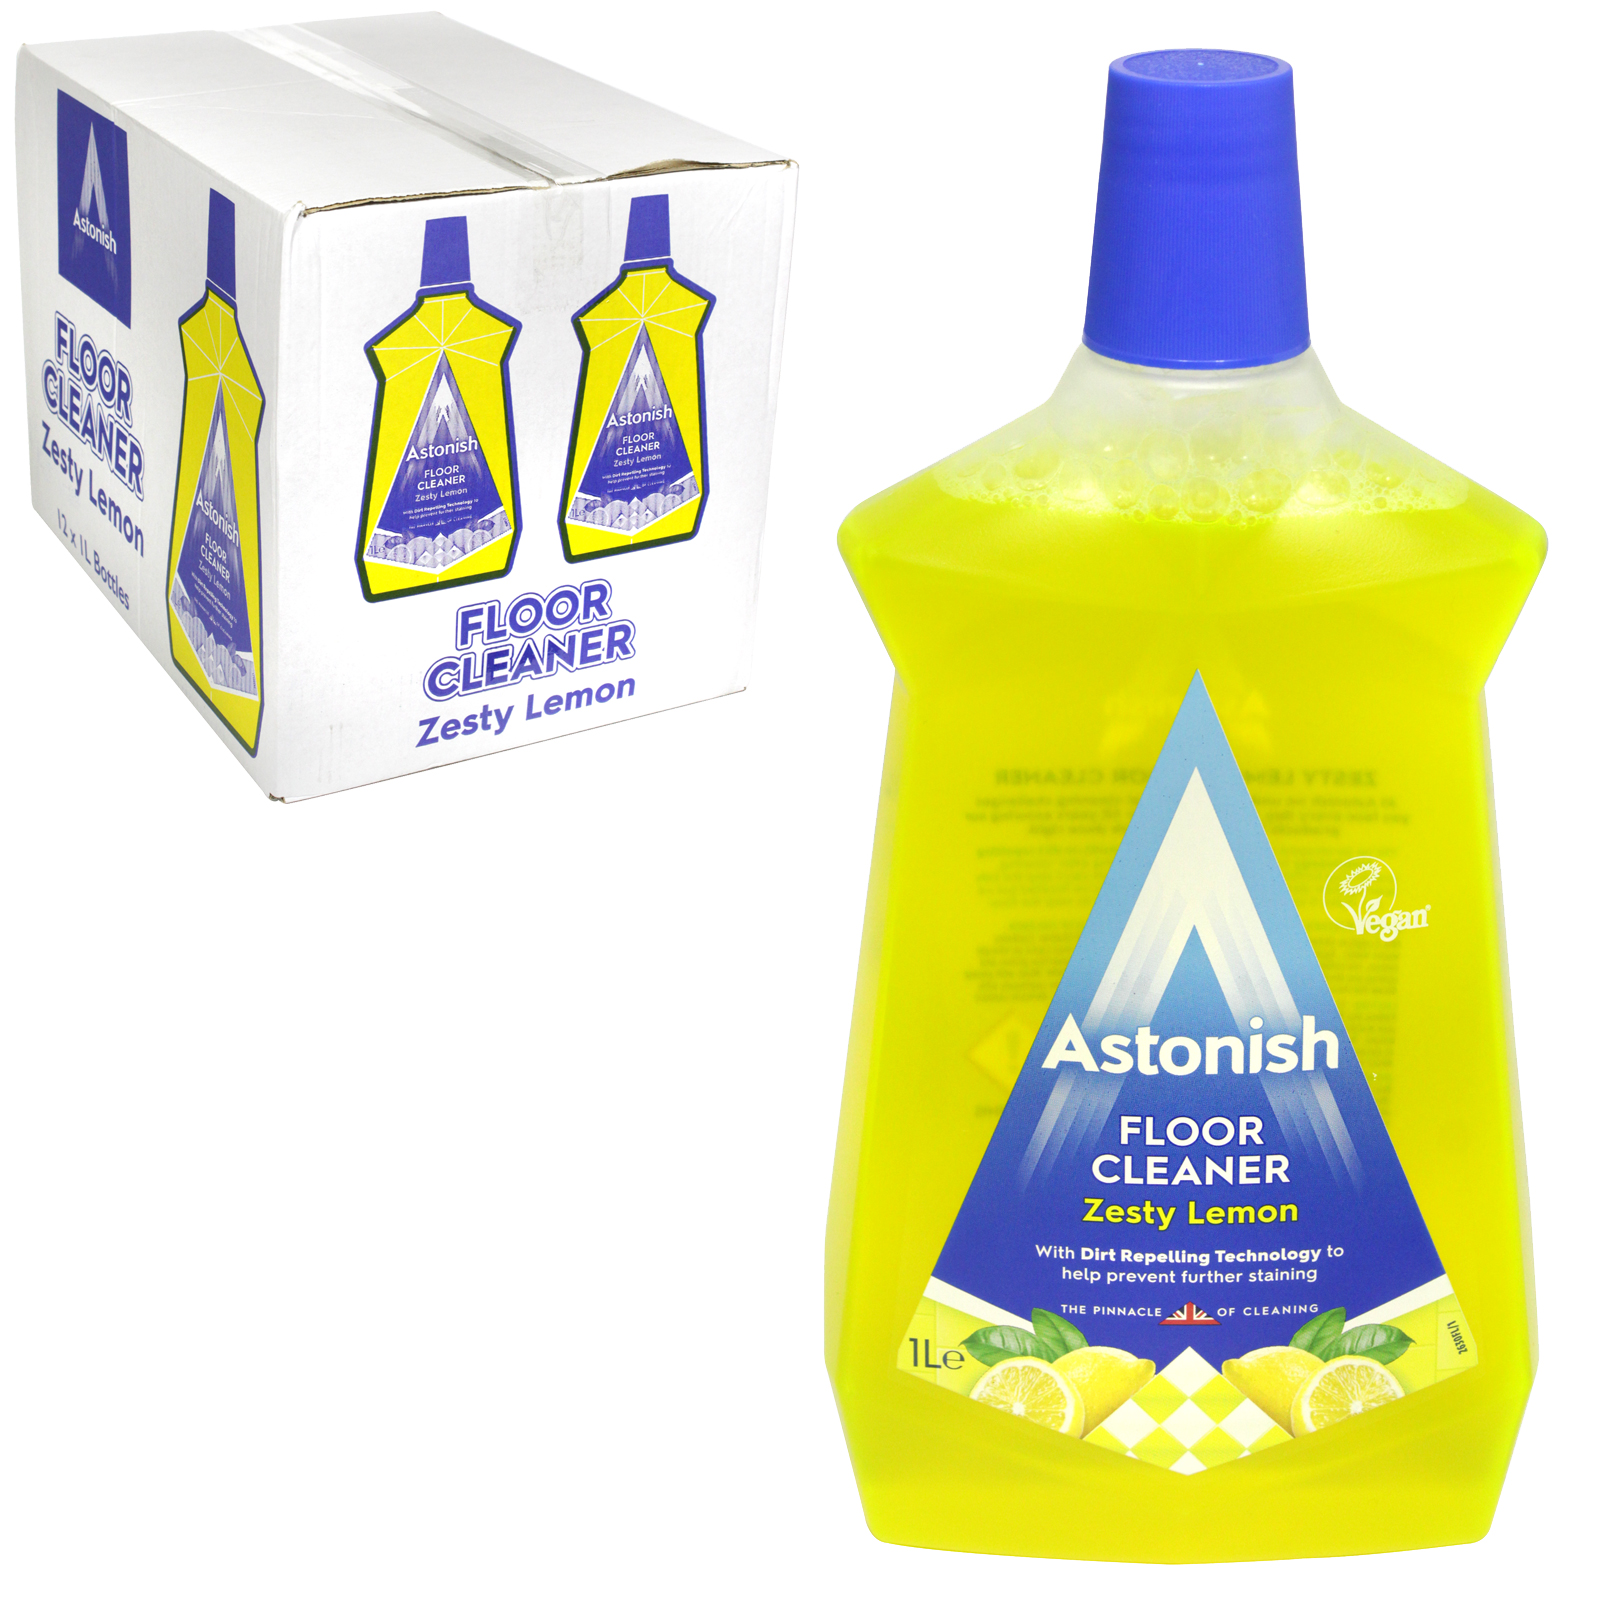 ASTONISH 1L FLOOR CLEANER ZESTY LEMON X12